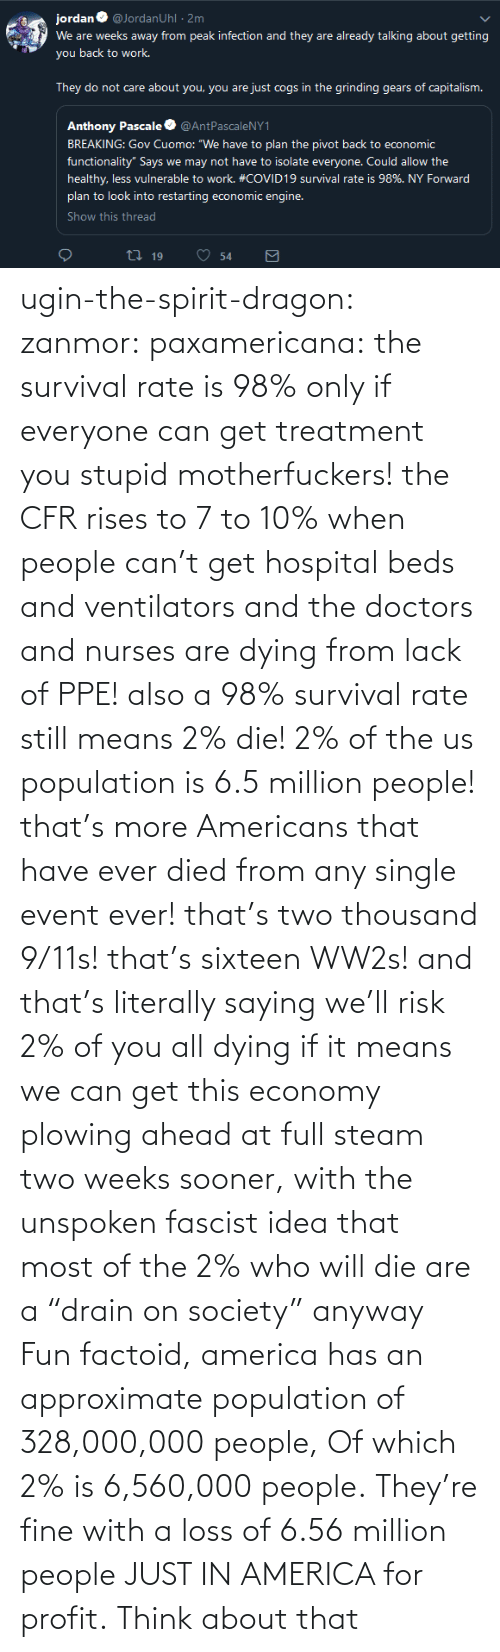 "Motherfuckers: ugin-the-spirit-dragon: zanmor:   paxamericana:  the survival rate is 98% only if everyone can get treatment you stupid motherfuckers! the CFR rises to 7 to 10% when people can't get hospital beds and ventilators and the doctors and nurses are dying from lack of PPE!  also a 98% survival rate still means 2% die! 2% of the us population is 6.5 million people! that's more Americans that have ever died from any single event ever! that's two thousand 9/11s! that's sixteen WW2s!  and that's literally saying we'll risk 2% of you all dying if it means we can get this economy plowing ahead at full steam two weeks sooner, with the unspoken fascist idea that most of the 2% who will die are a ""drain on society"" anyway    Fun factoid, america has an approximate population of 328,000,000 people,  Of which 2% is 6,560,000 people. They're fine with a loss of 6.56 million people JUST IN AMERICA for profit. Think about that"